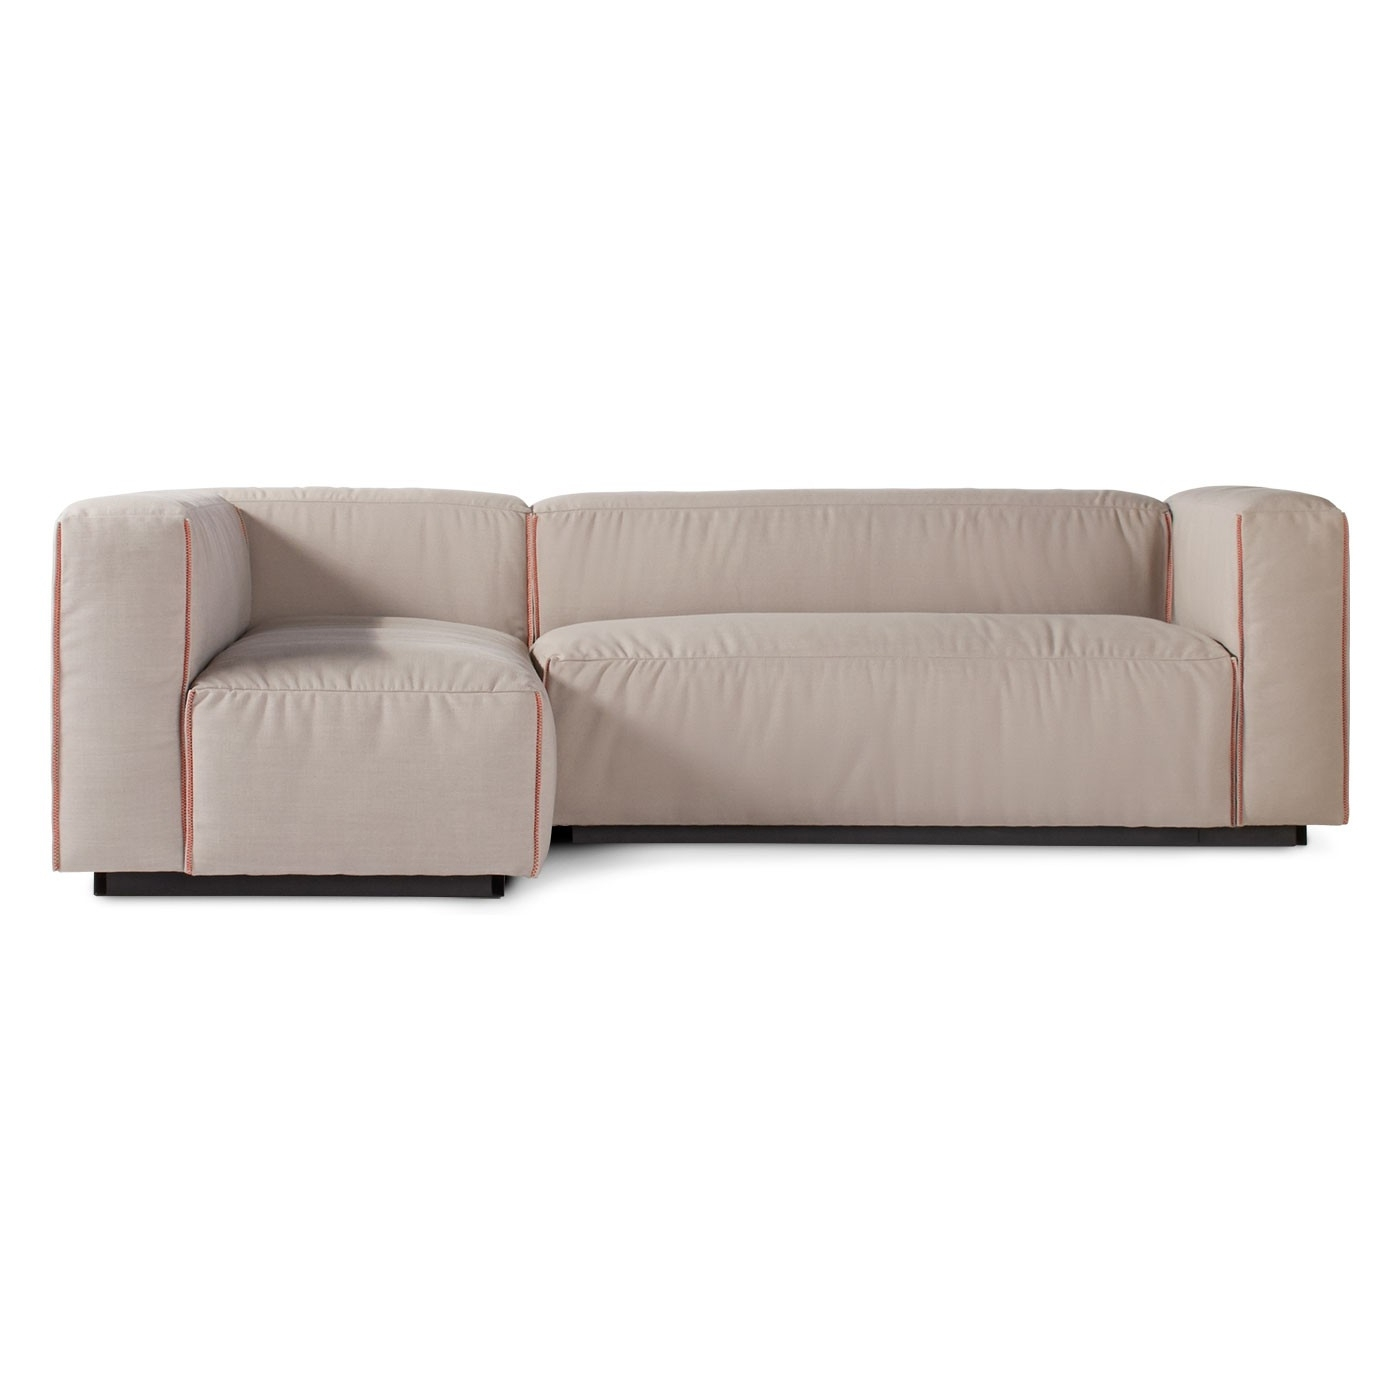 Well Known Leons Sectional Sofas Pertaining To Sectional Sofa Design: Elegant Small Modern Sectional Sofa (View 13 of 20)